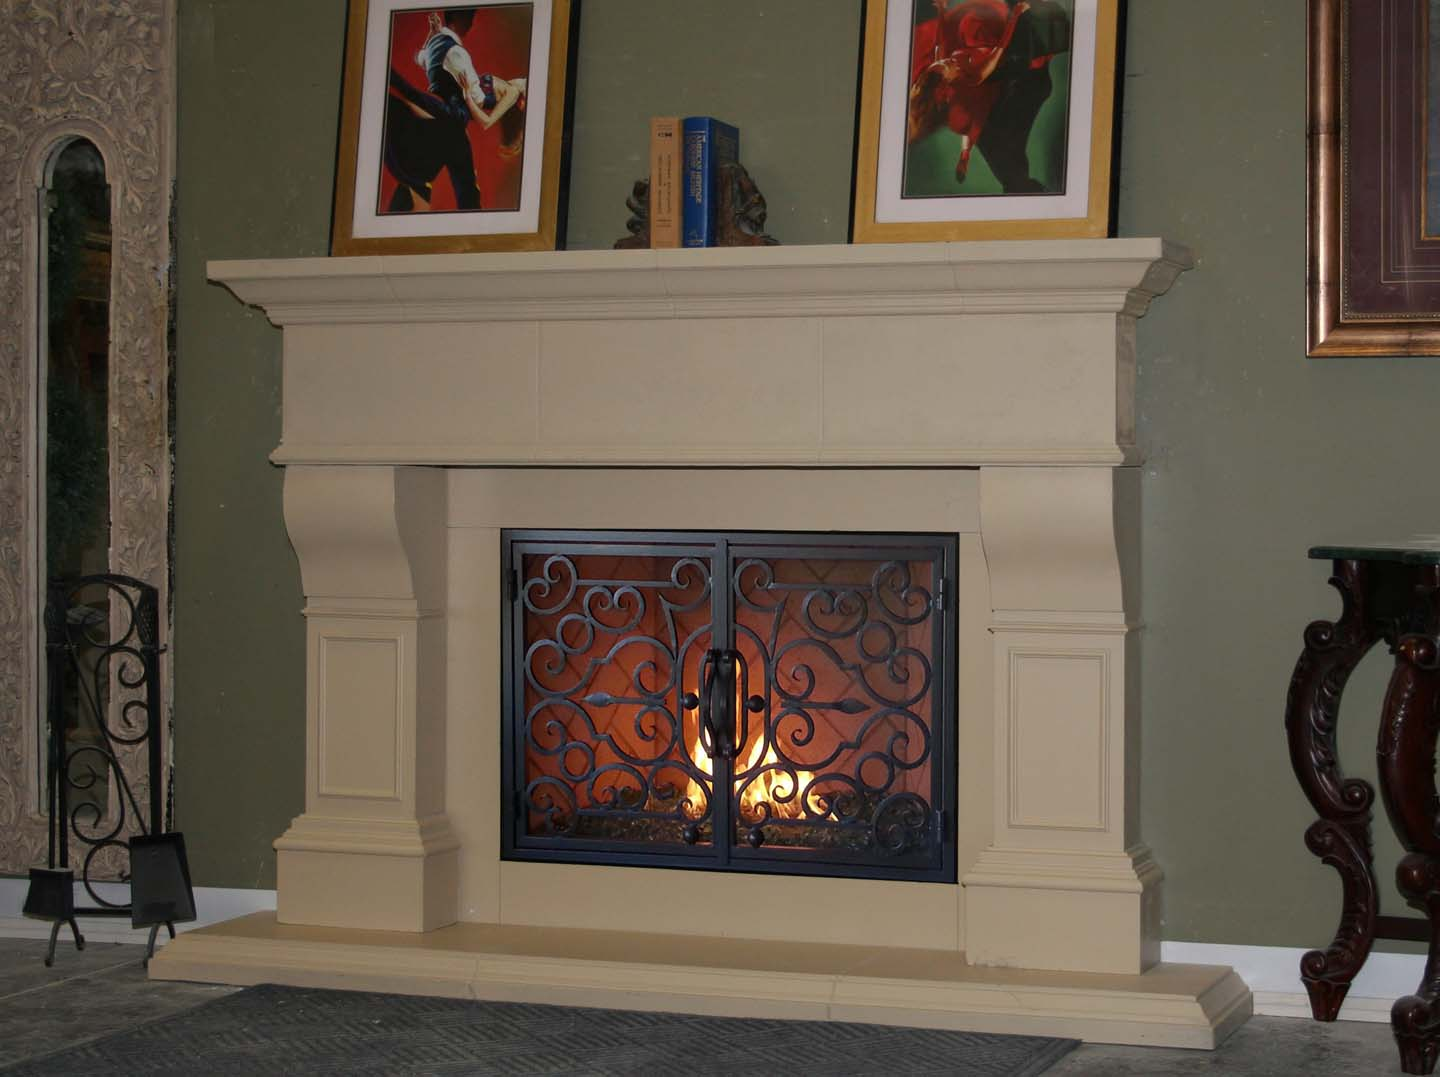 Mt232 Fireplace Mantels Fireplace Surrounds Iron Fireplace Doors And Screens In San Diego